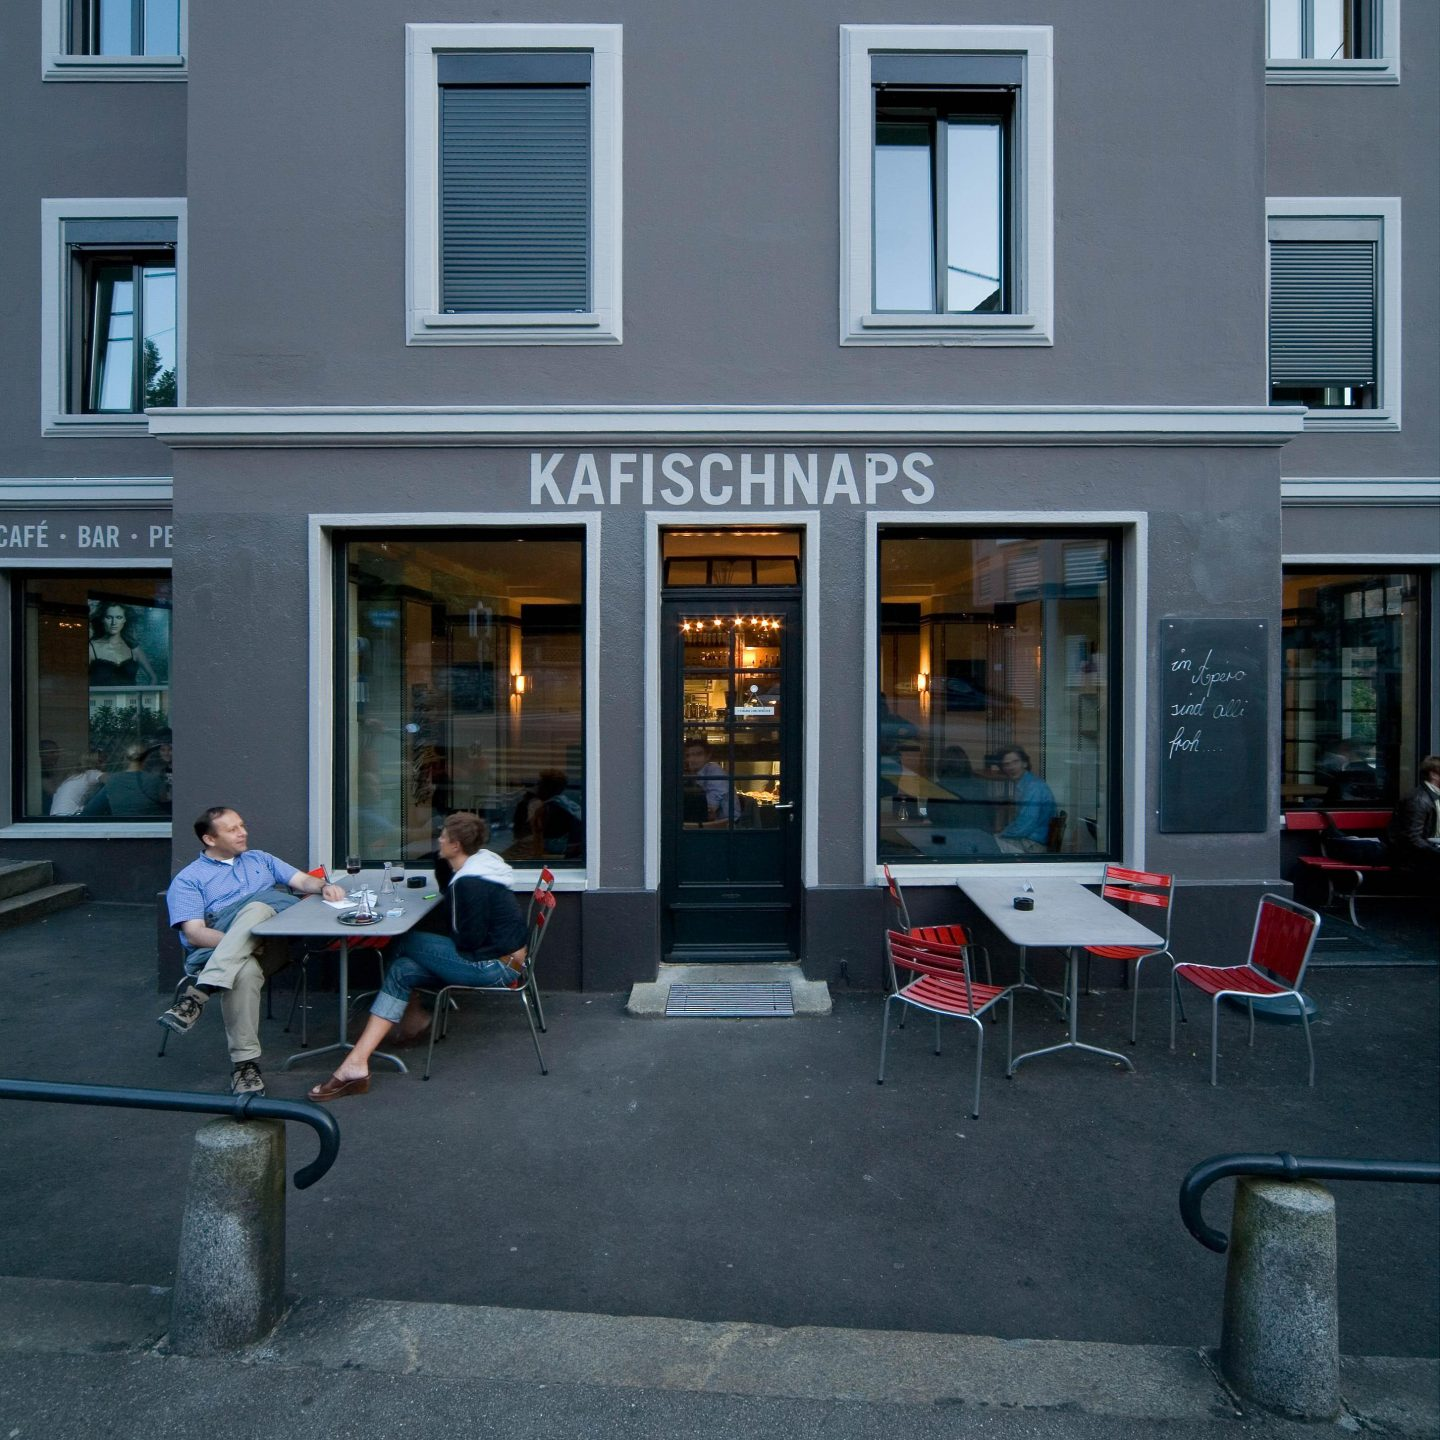 Kafischnaps, Zürich. Hildebrand Studios AG, Architecture and Urban Design in Zurich, Switzerland